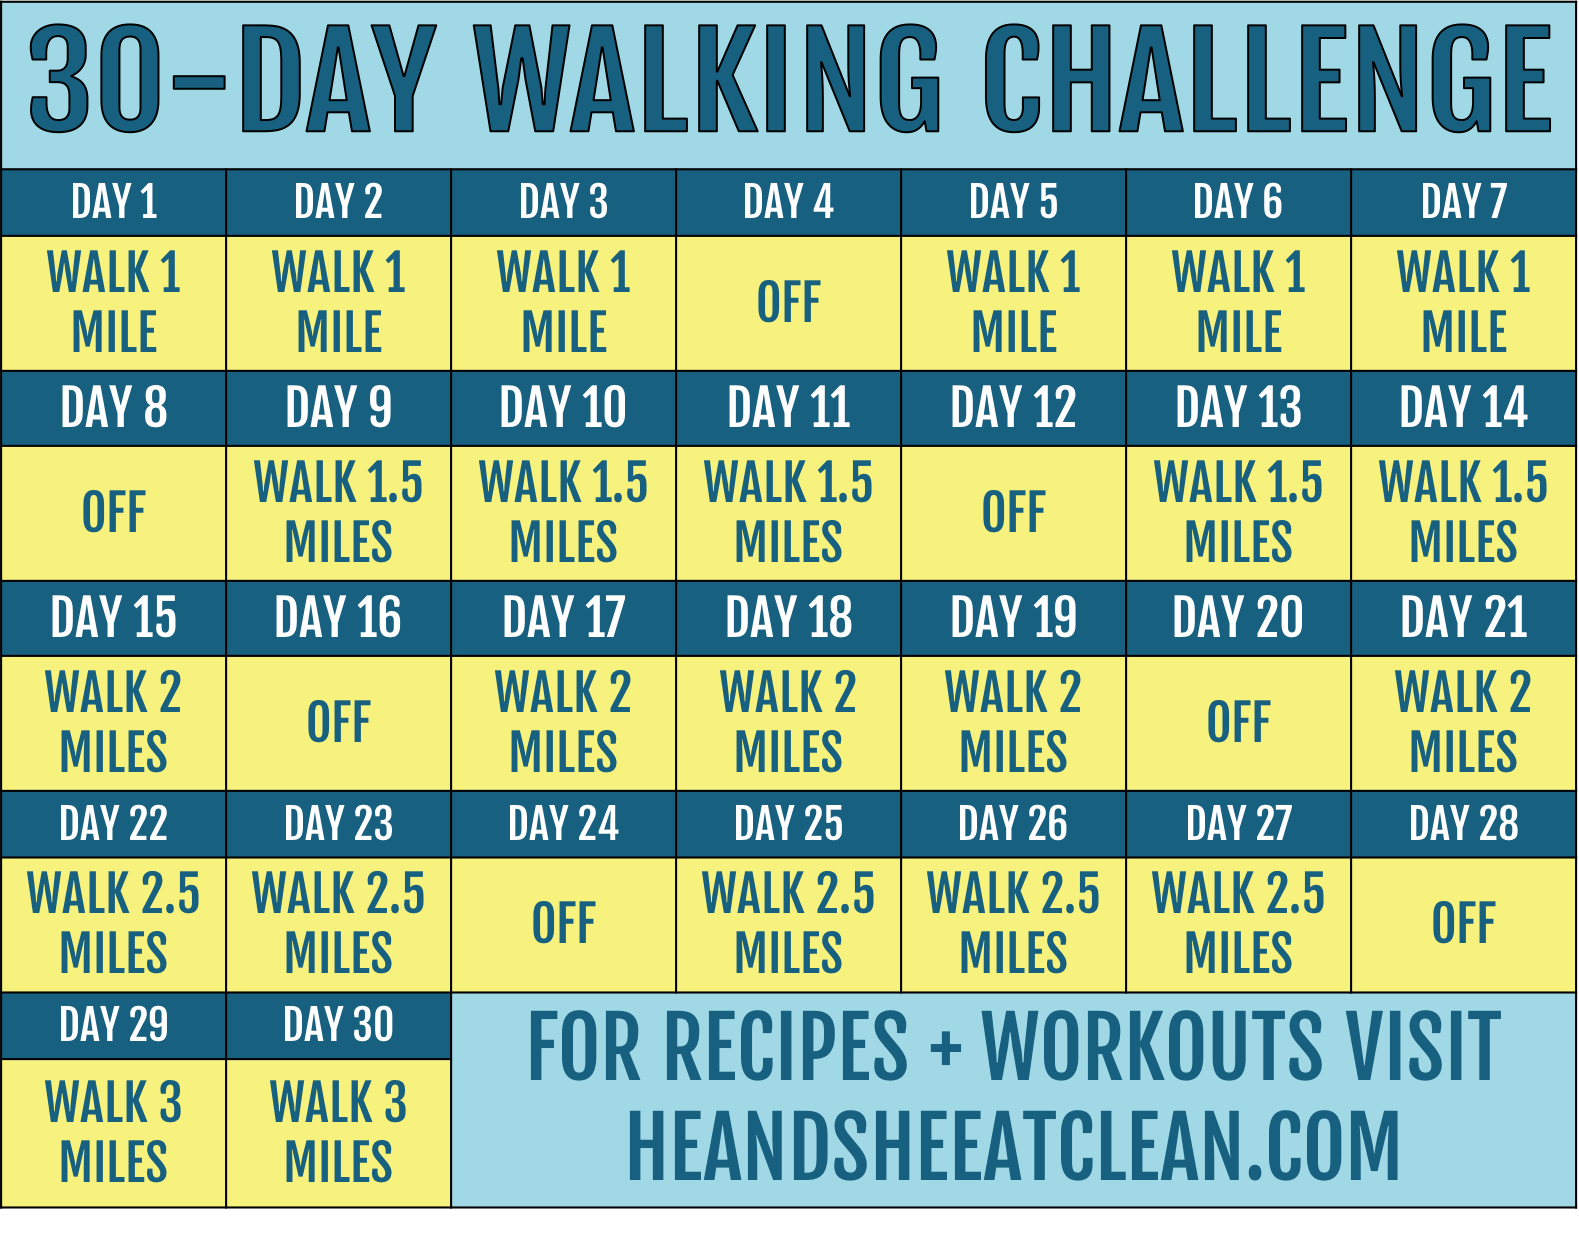 30-Day Walking Challenge